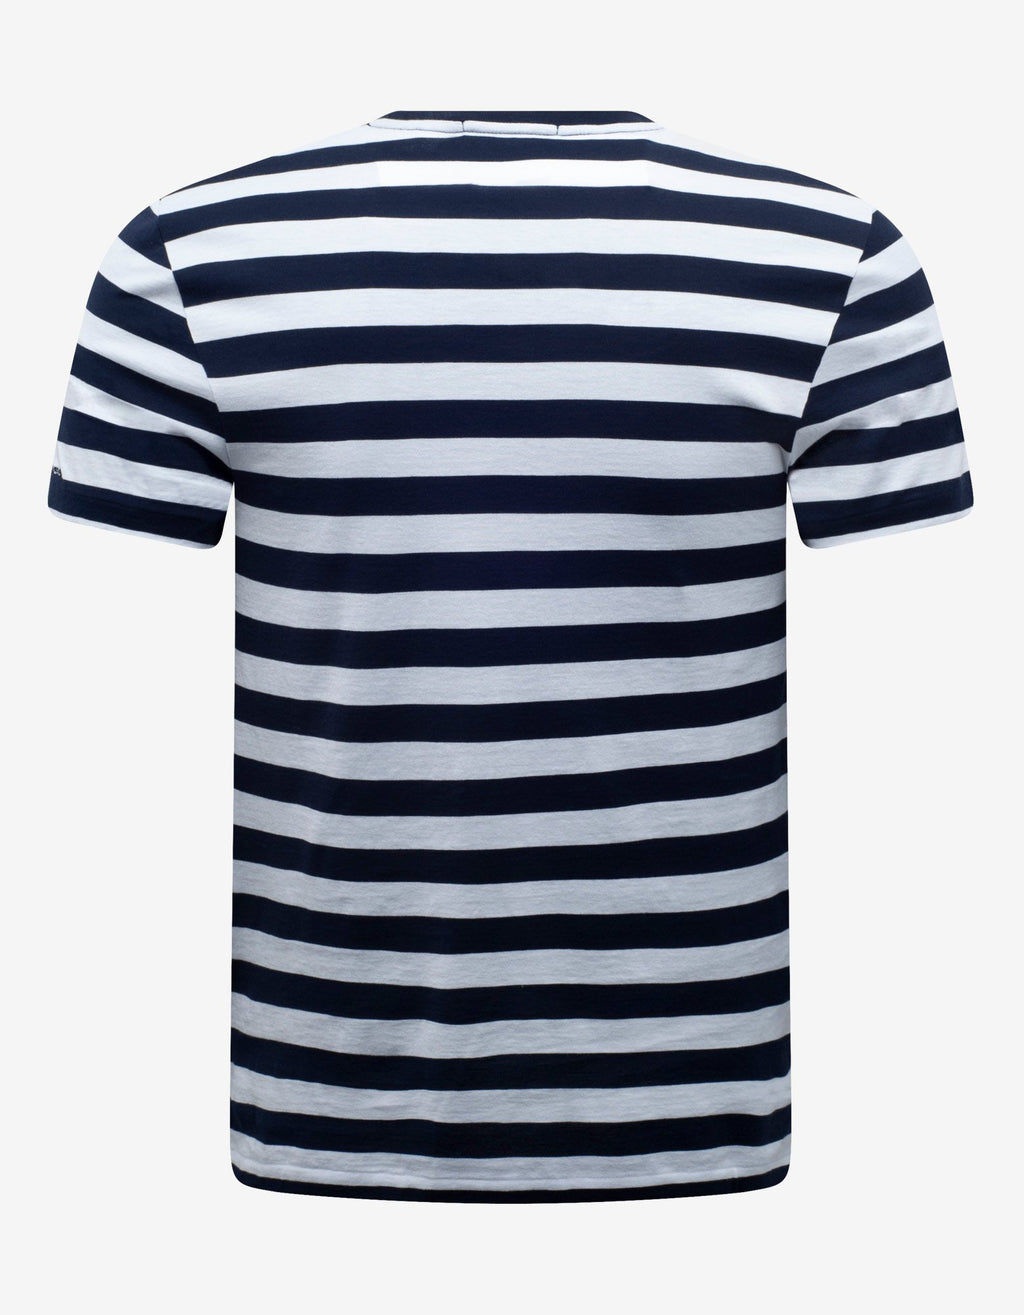 Blue & White Striped T-Shirt -